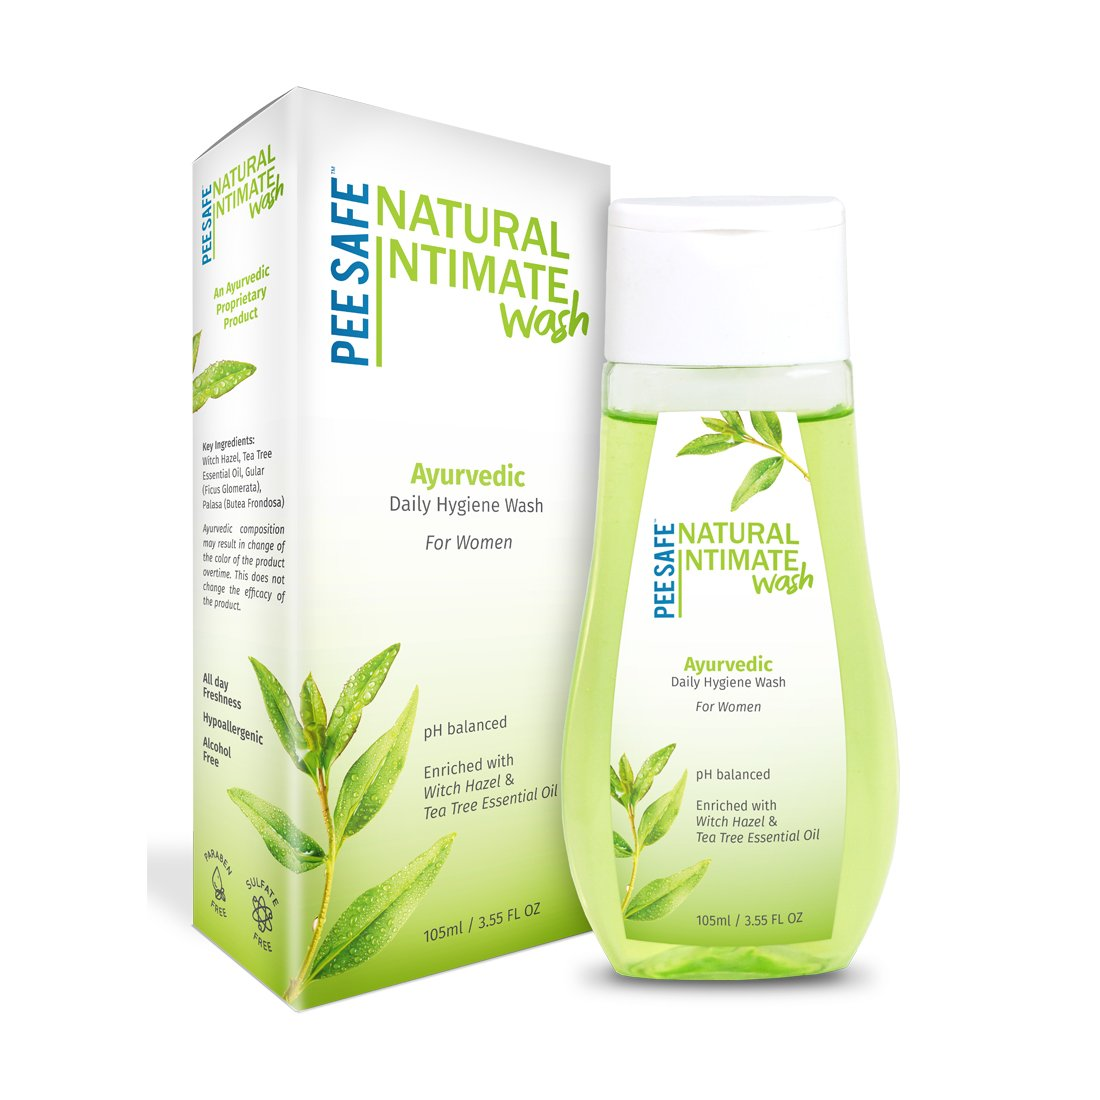 Pee Safe Natural Intimate Wash - 105 ml product image